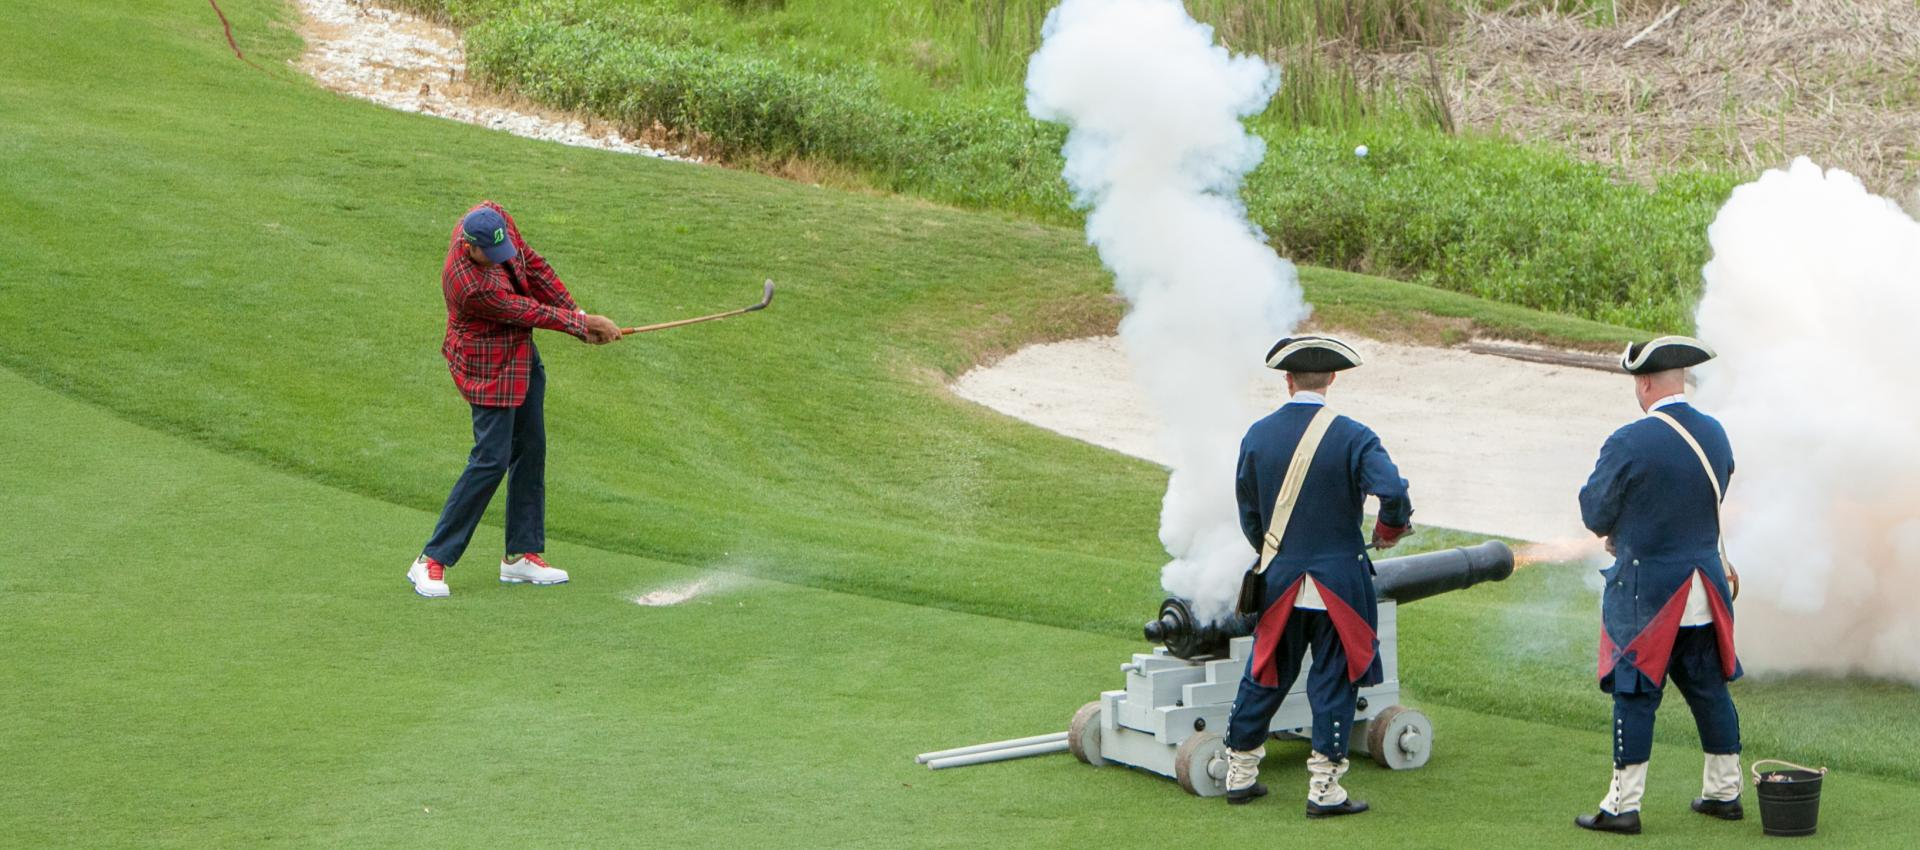 man hitting wedge while canons go off